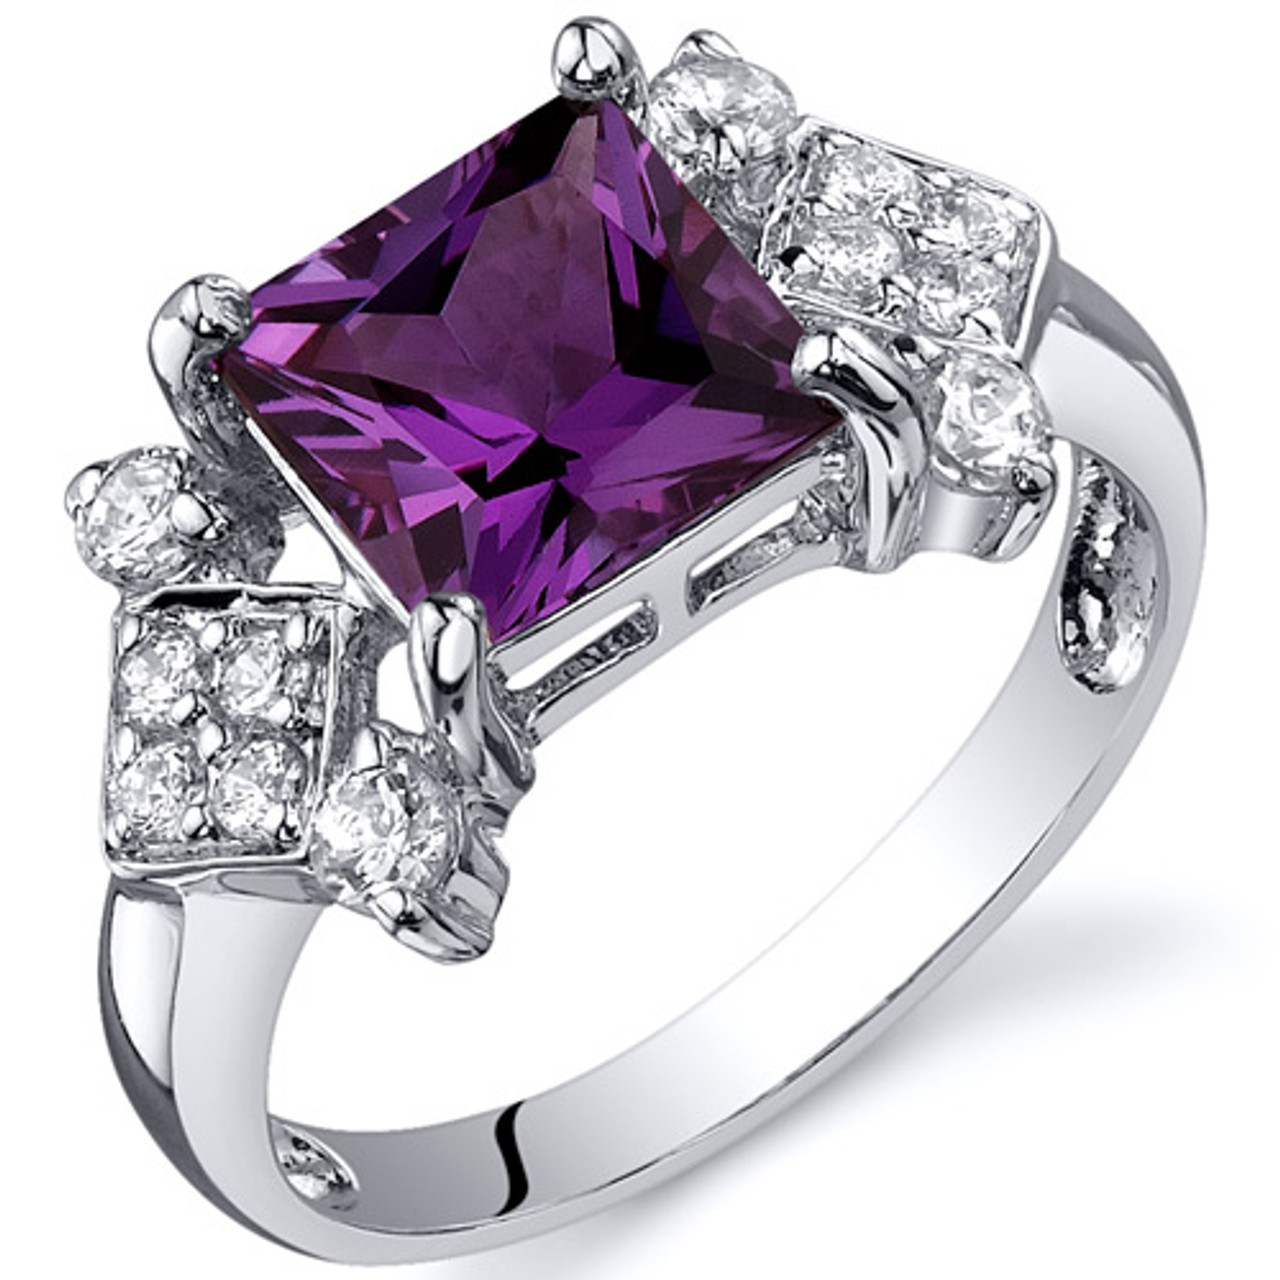 Princess Cut 3.25 cts Pink Sapphire Ring Sterling Silver Sizes 5 to 9